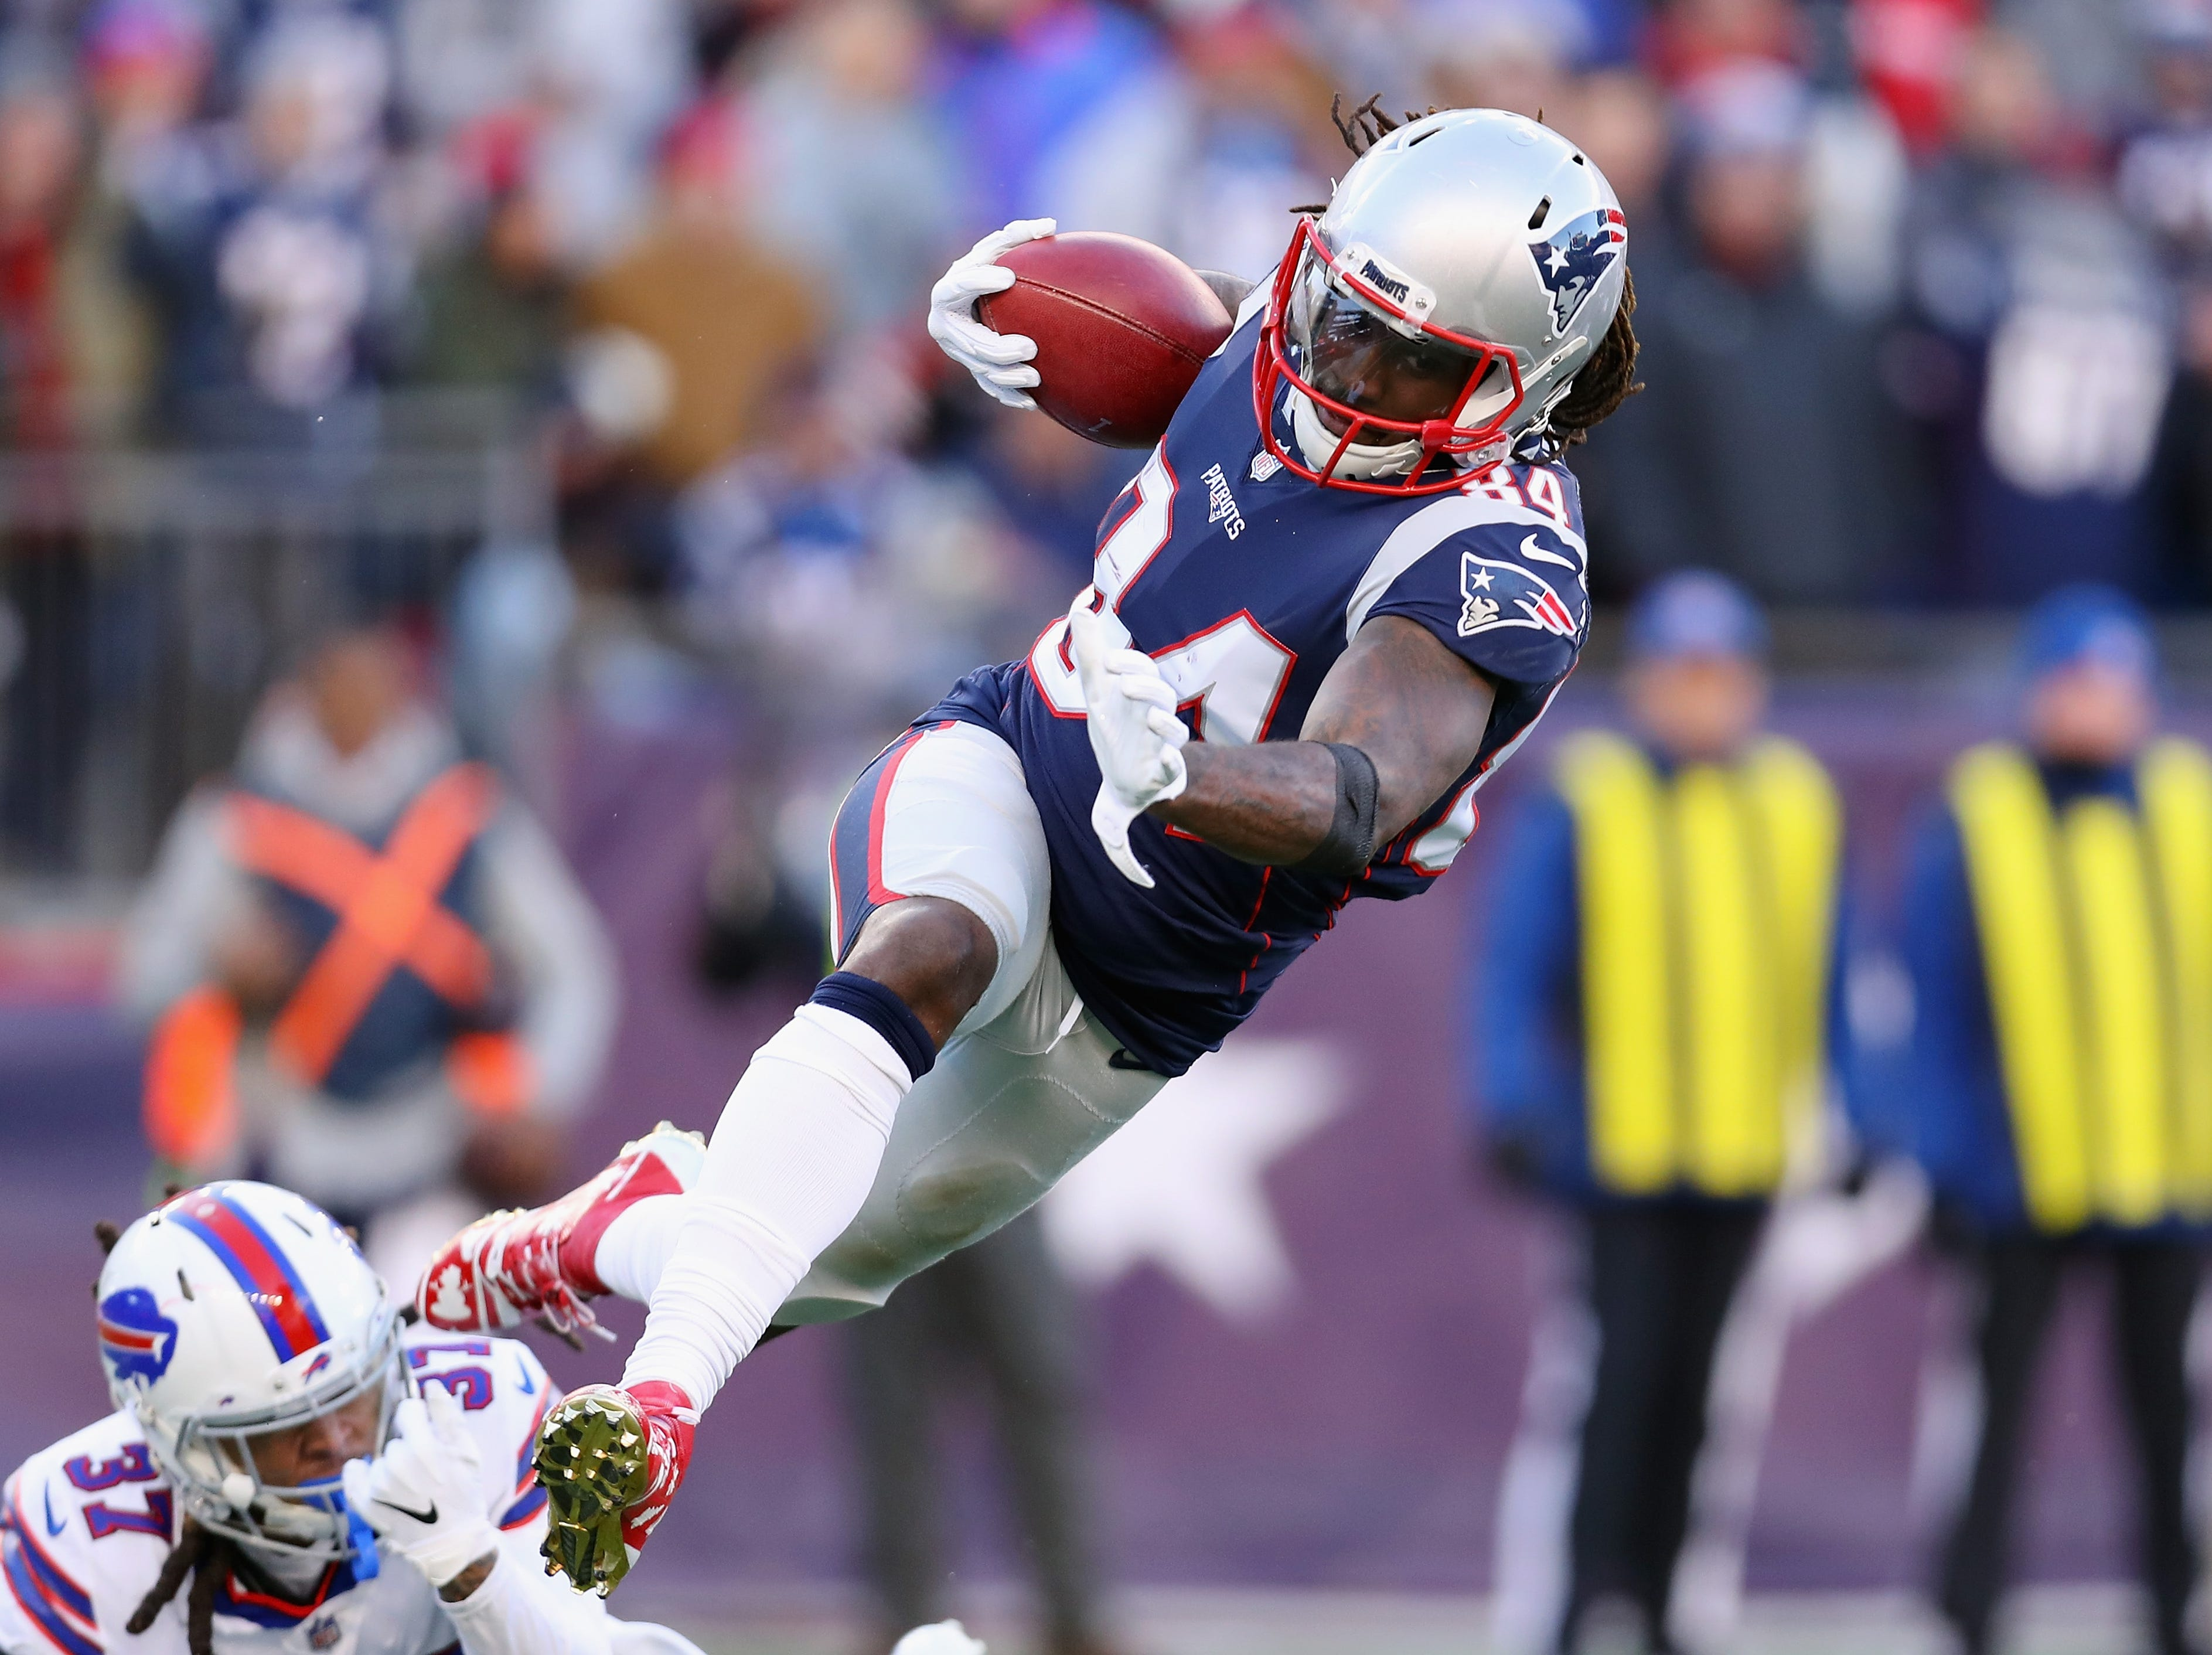 FOXBOROUGH, MA - DECEMBER 23:  Cordarrelle Patterson #84 of the New England Patriots is tackled by Denzel Rice #37 of the Buffalo Bills during the second half at Gillette Stadium on December 23, 2018 in Foxborough, Massachusetts.  (Photo by Maddie Meyer/Getty Images)